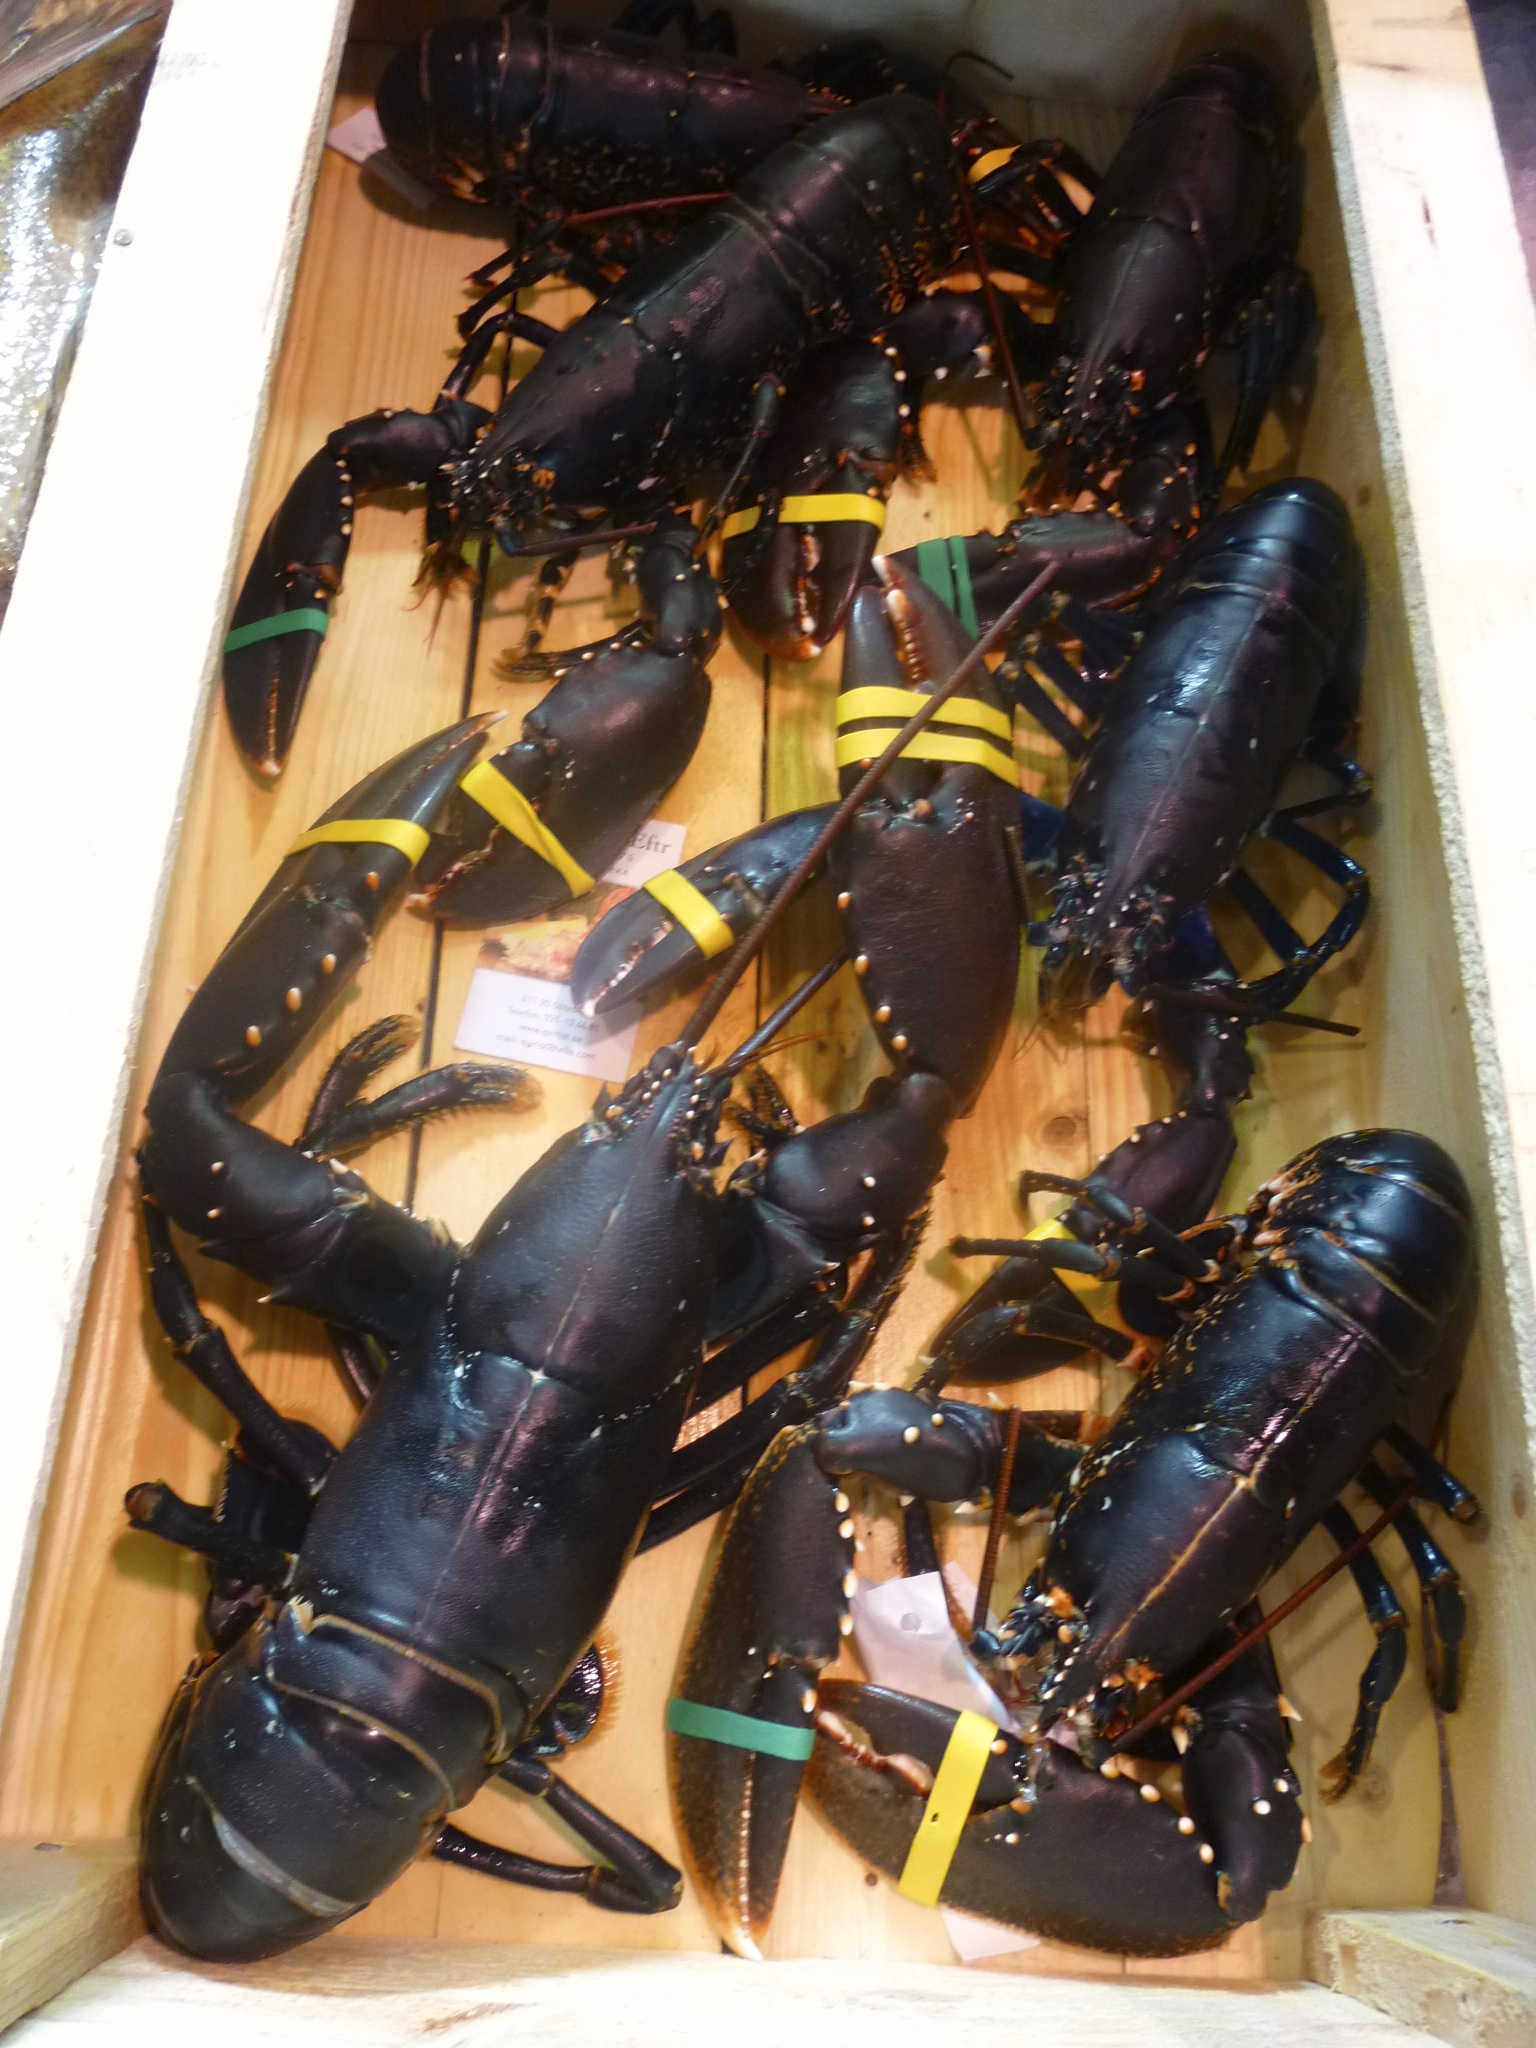 Lobster, ready for purchase.